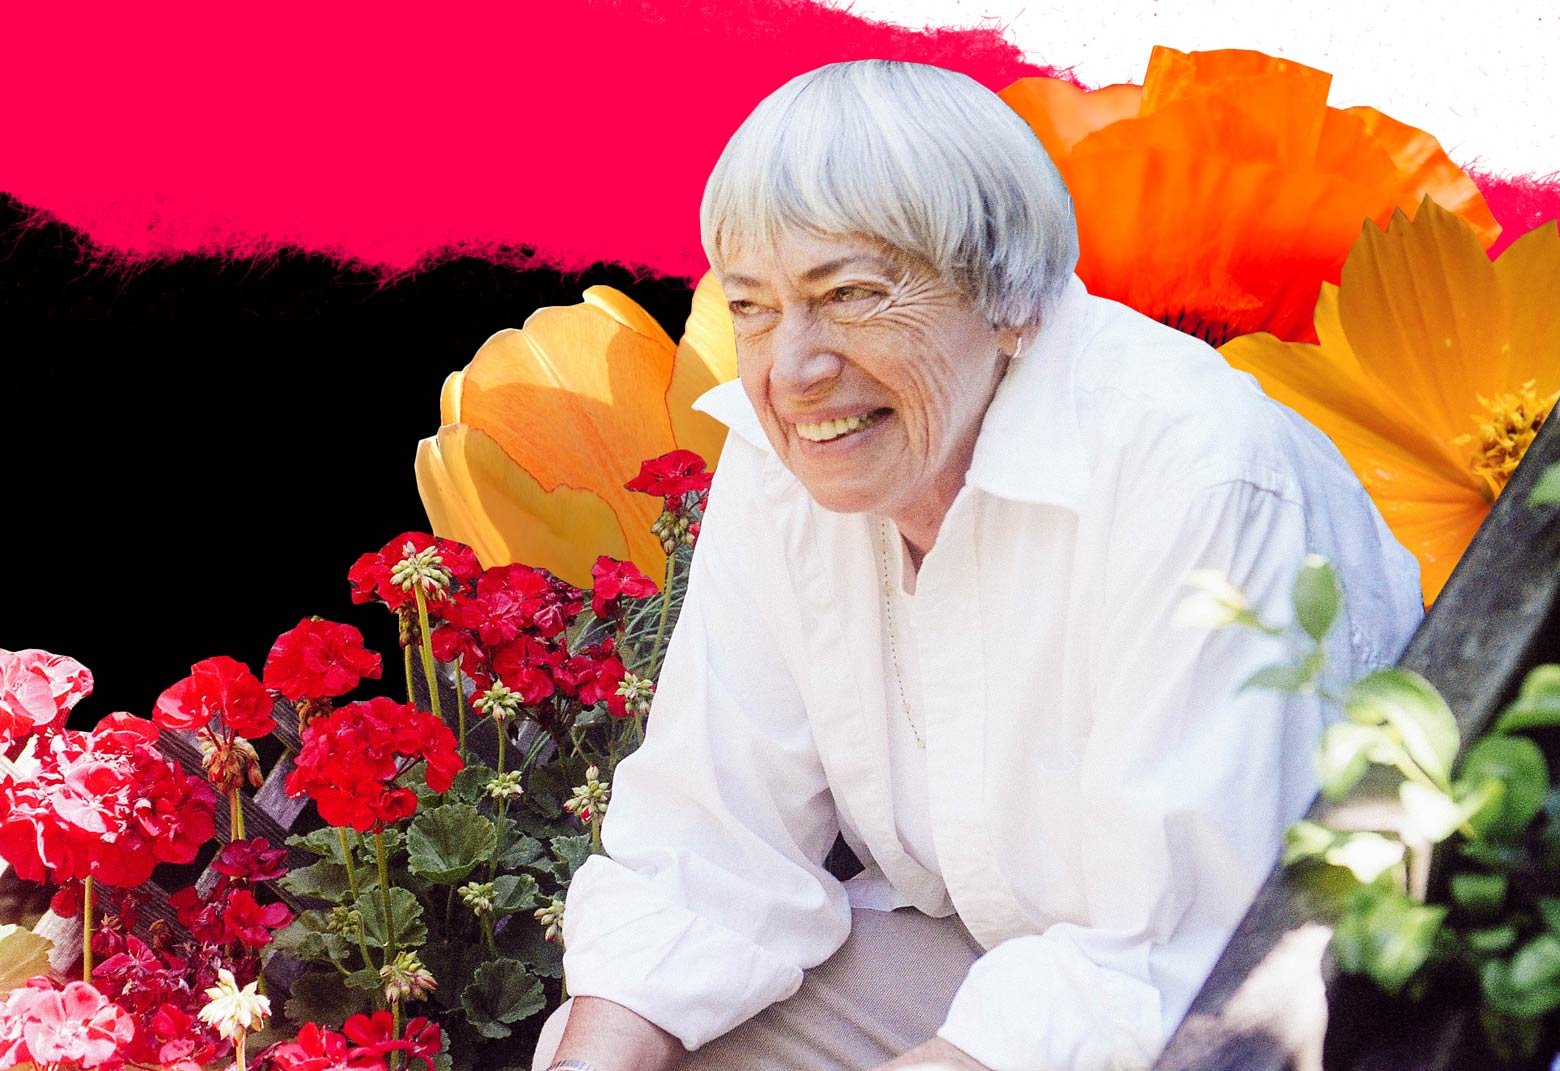 Photo illustration: Ursula K. Le Guin surrounded by flowers in her garden.